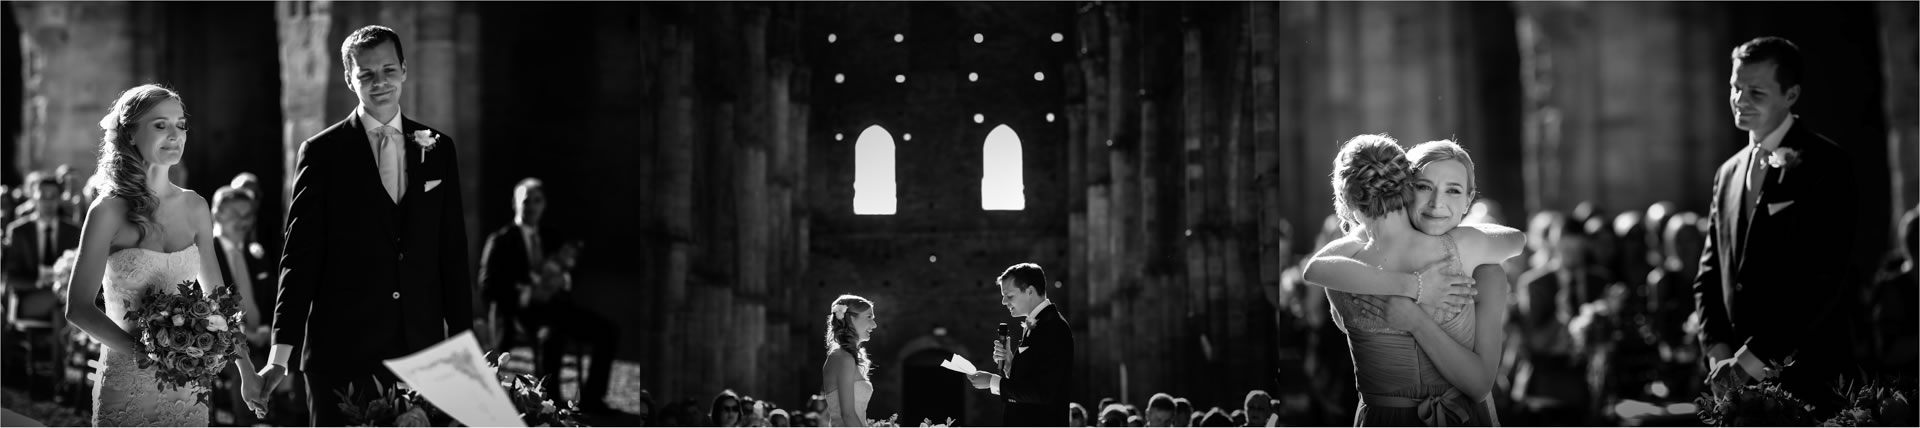 - 24 :: Wedding at Borgo Santo Pietro // San Galgano // WPPI 2018 // You look like a movie :: Luxury wedding photography - 23 ::  - 24